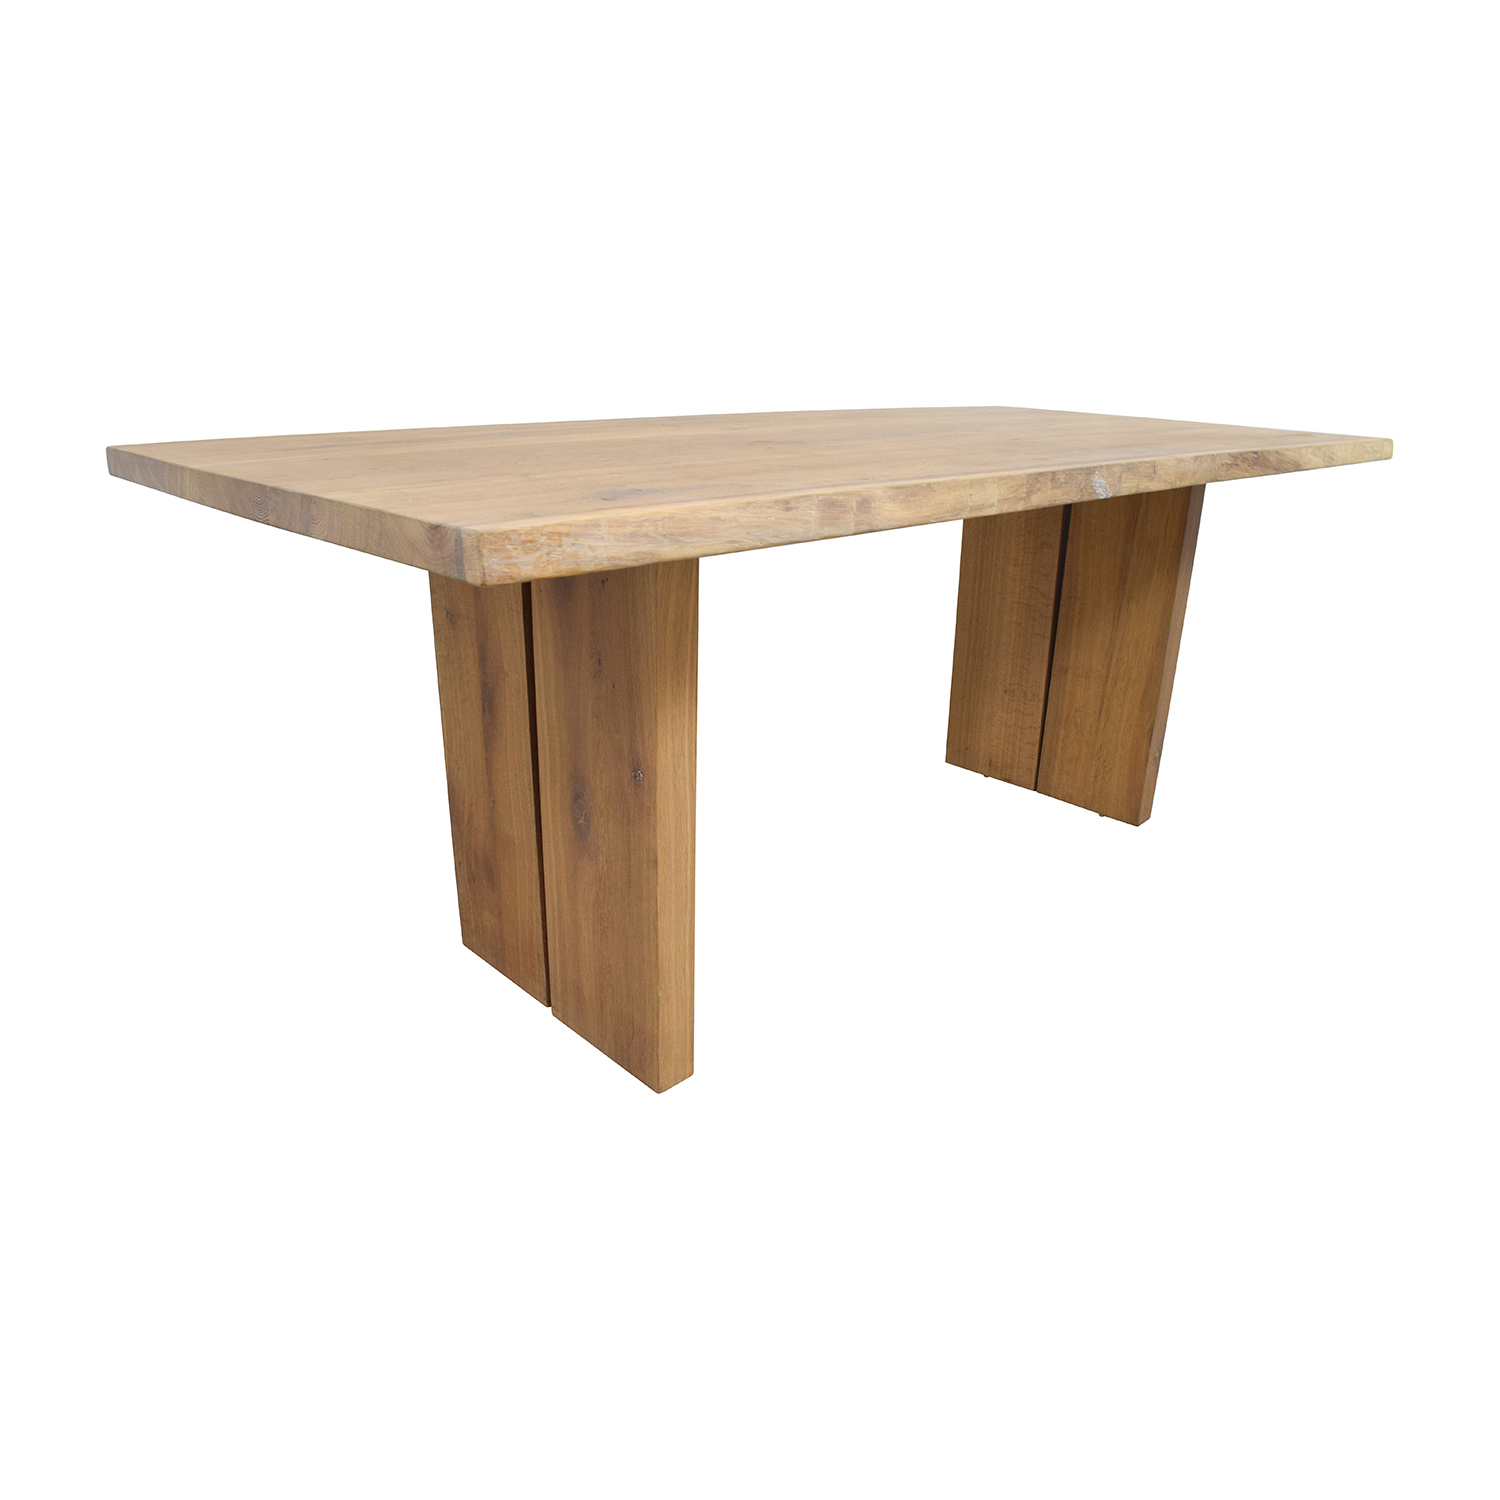 54 off modern wood plank dining table tables for Dinner table wood